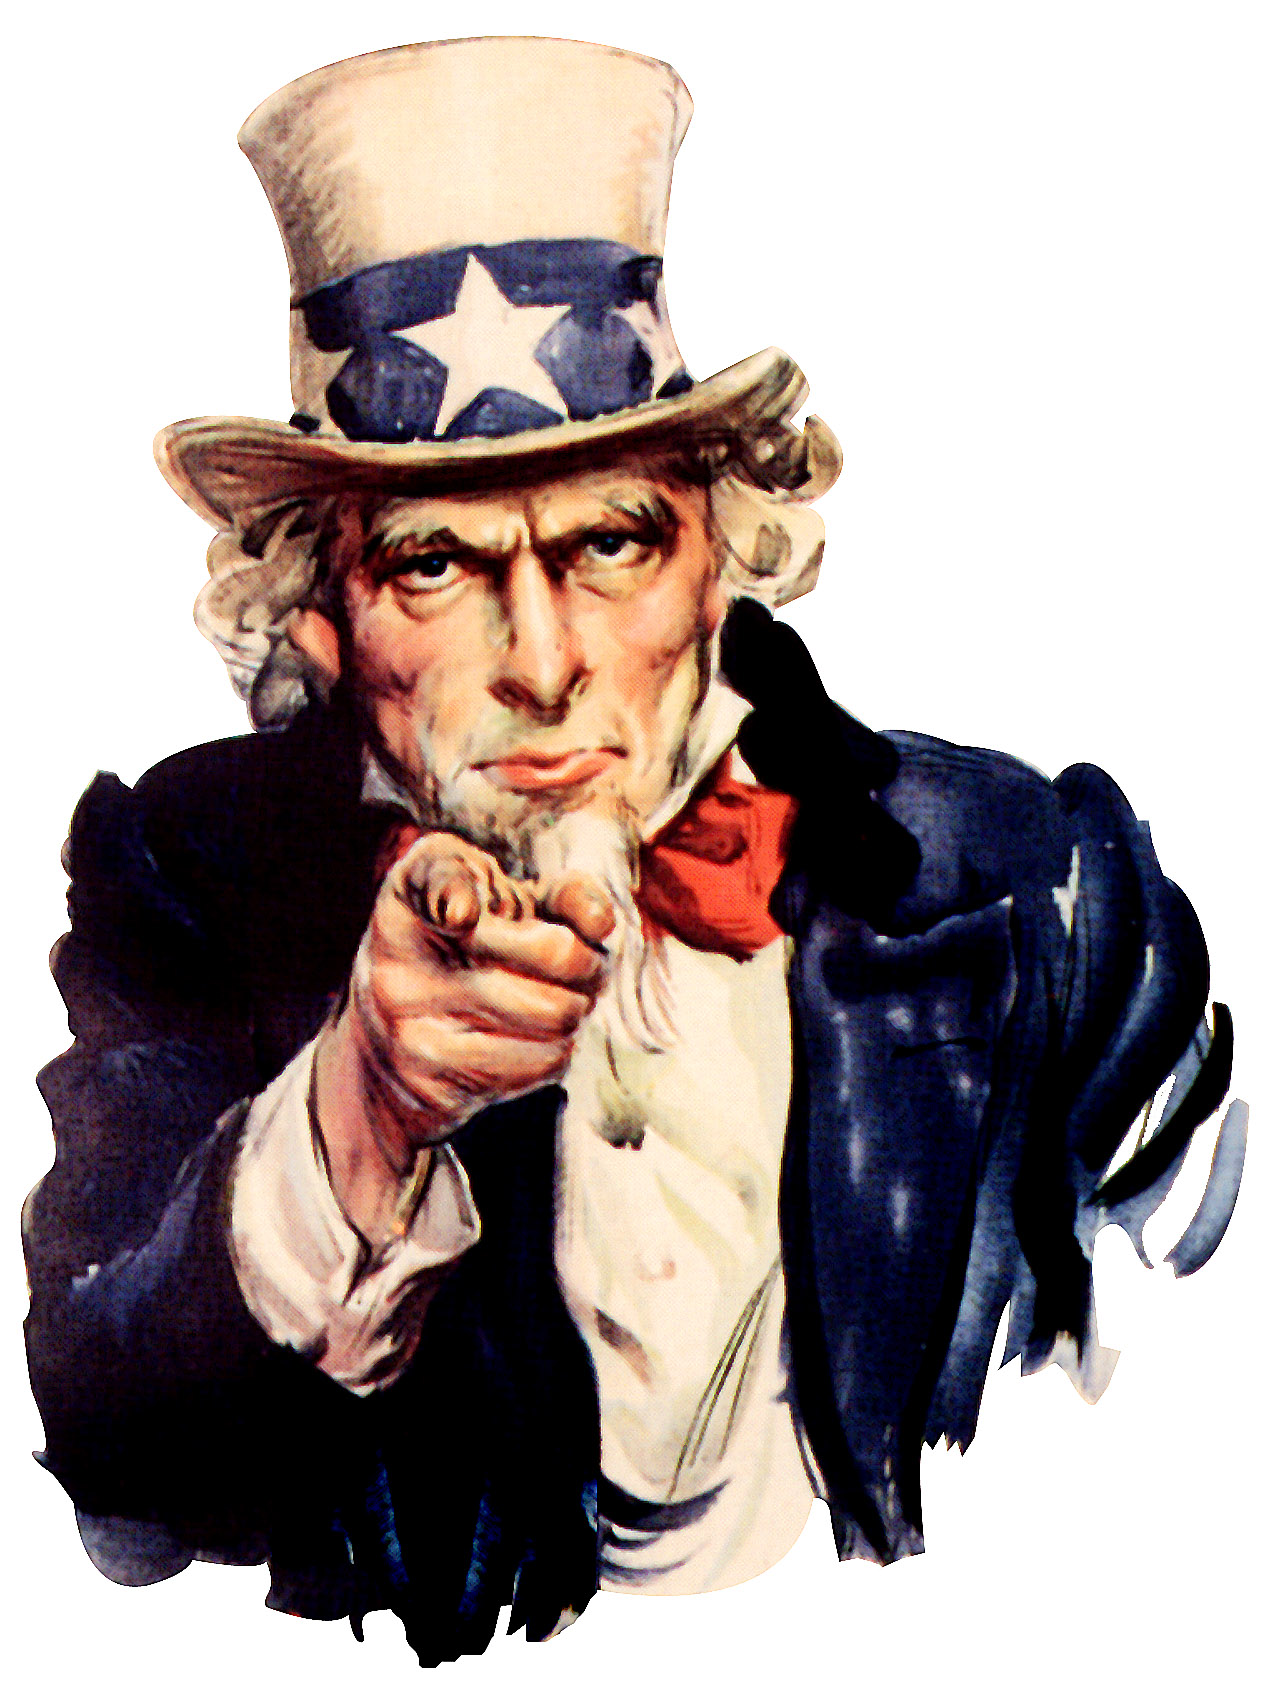 http://thelastcivilright.files.wordpress.com/2011/12/uncle_sam_pointing_finger_original4.jpg